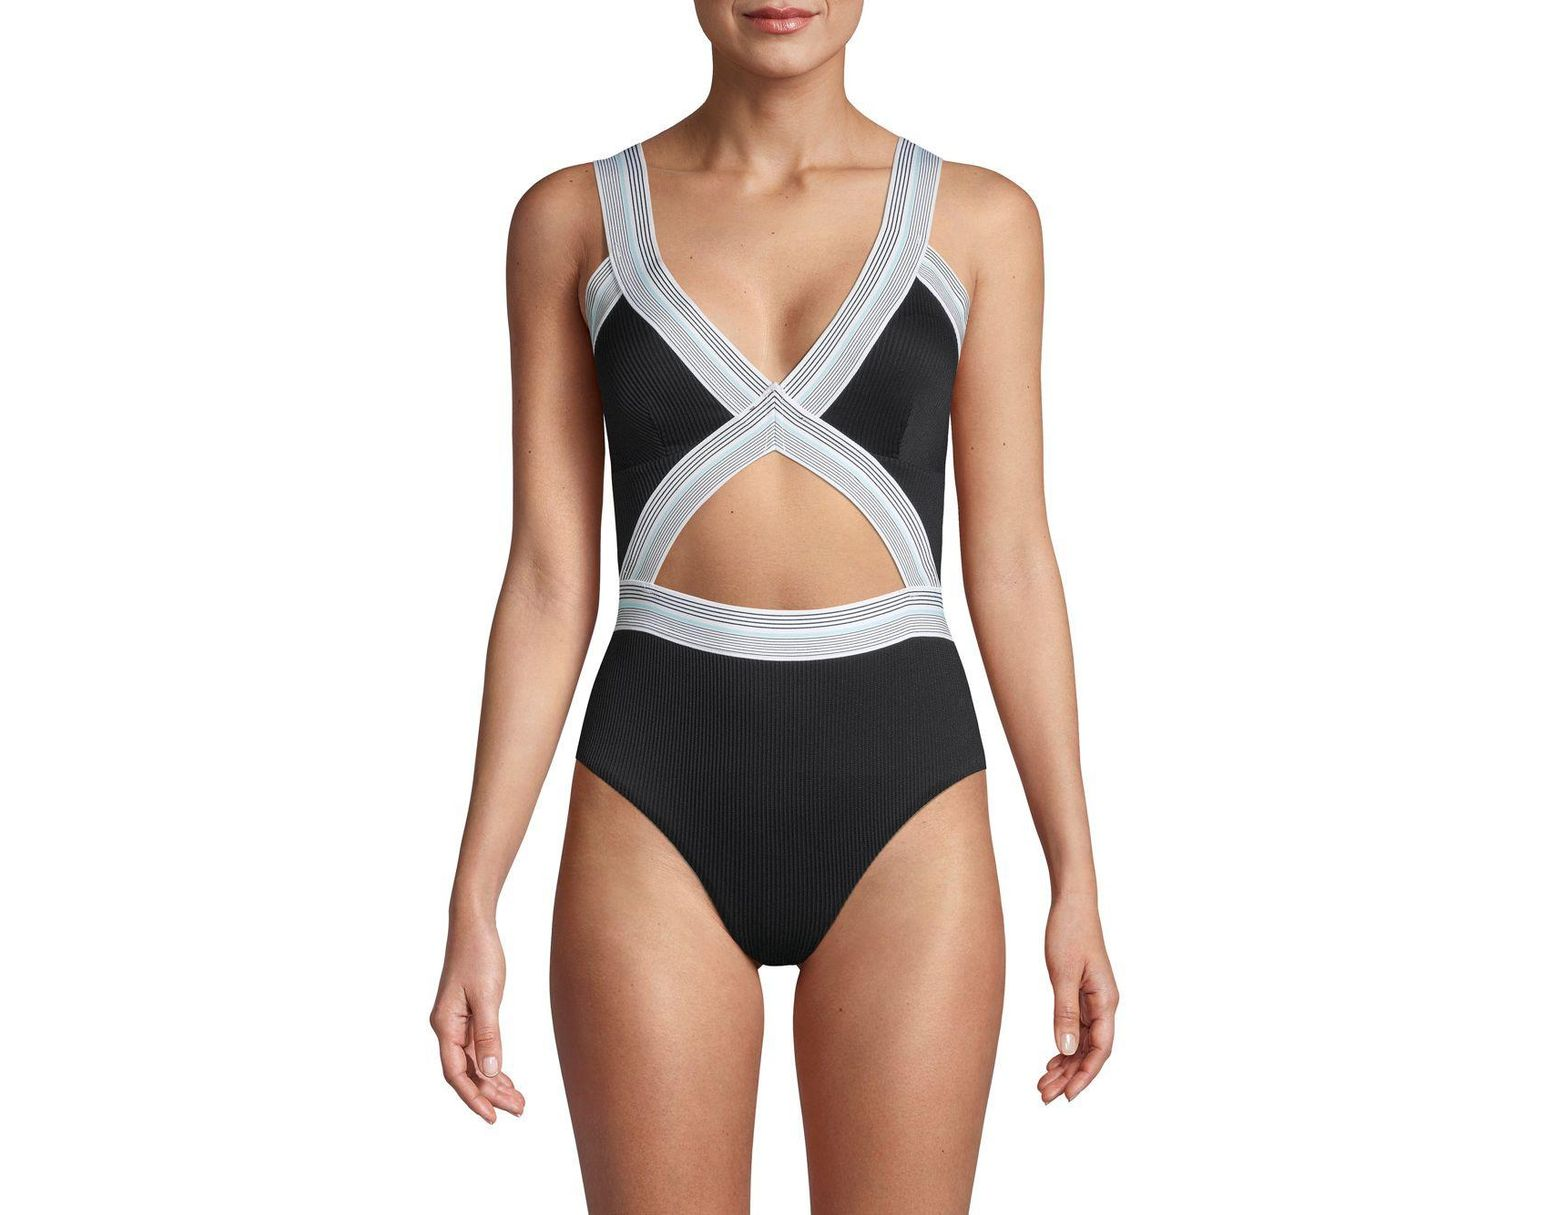 18988a27f5 Dolce Vita Fast Lane Blair Cutout One Piece Swimsuit in Black - Save 44% -  Lyst